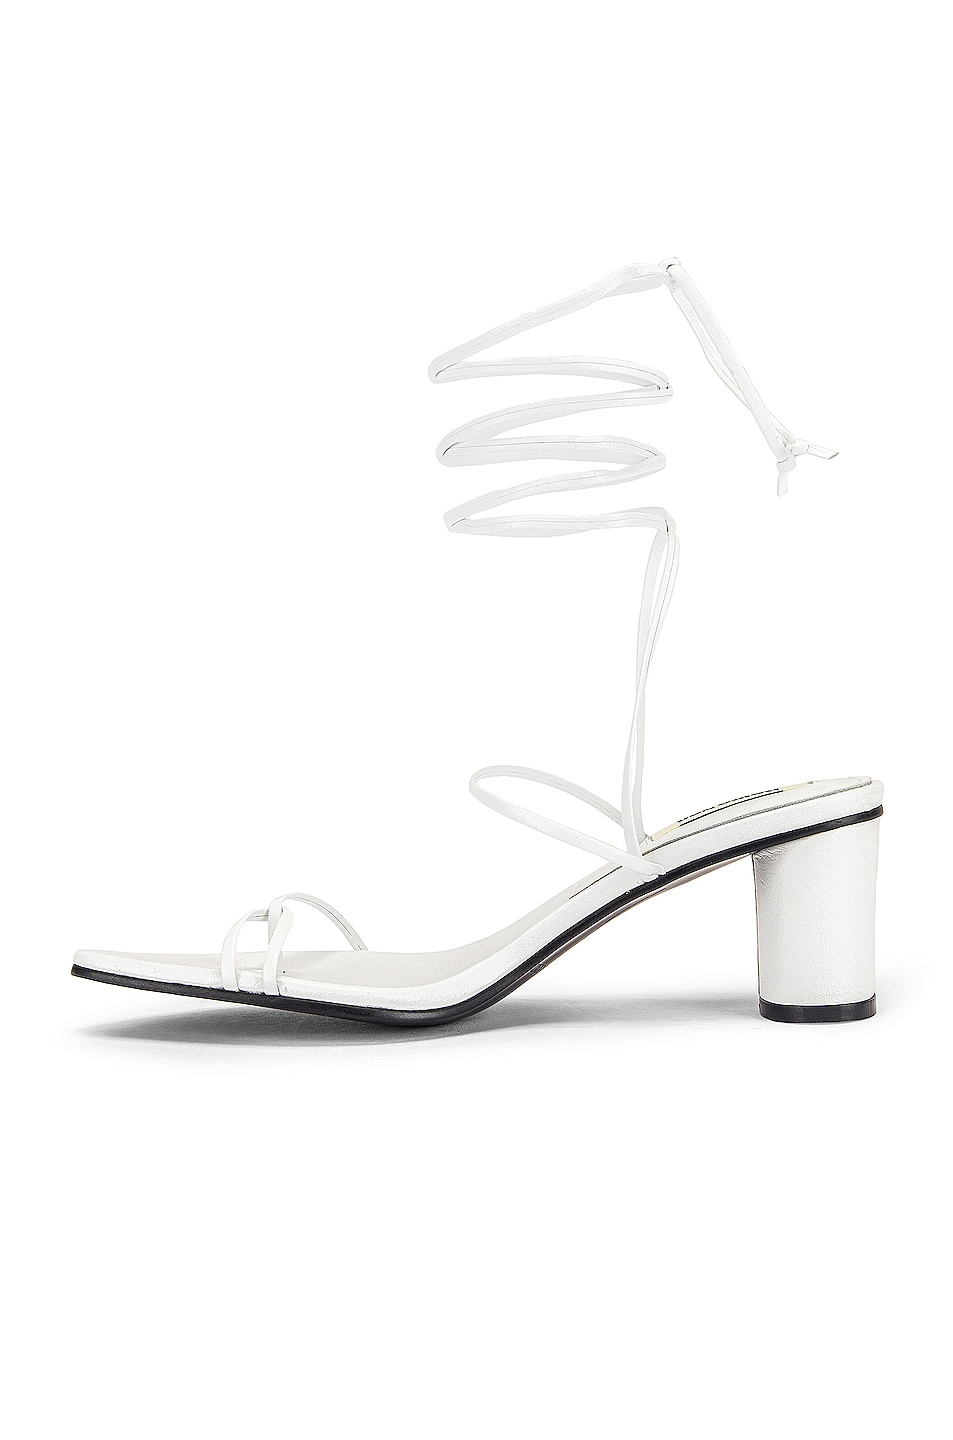 Image 5 of Reike Nen Odd Pair Heels in White